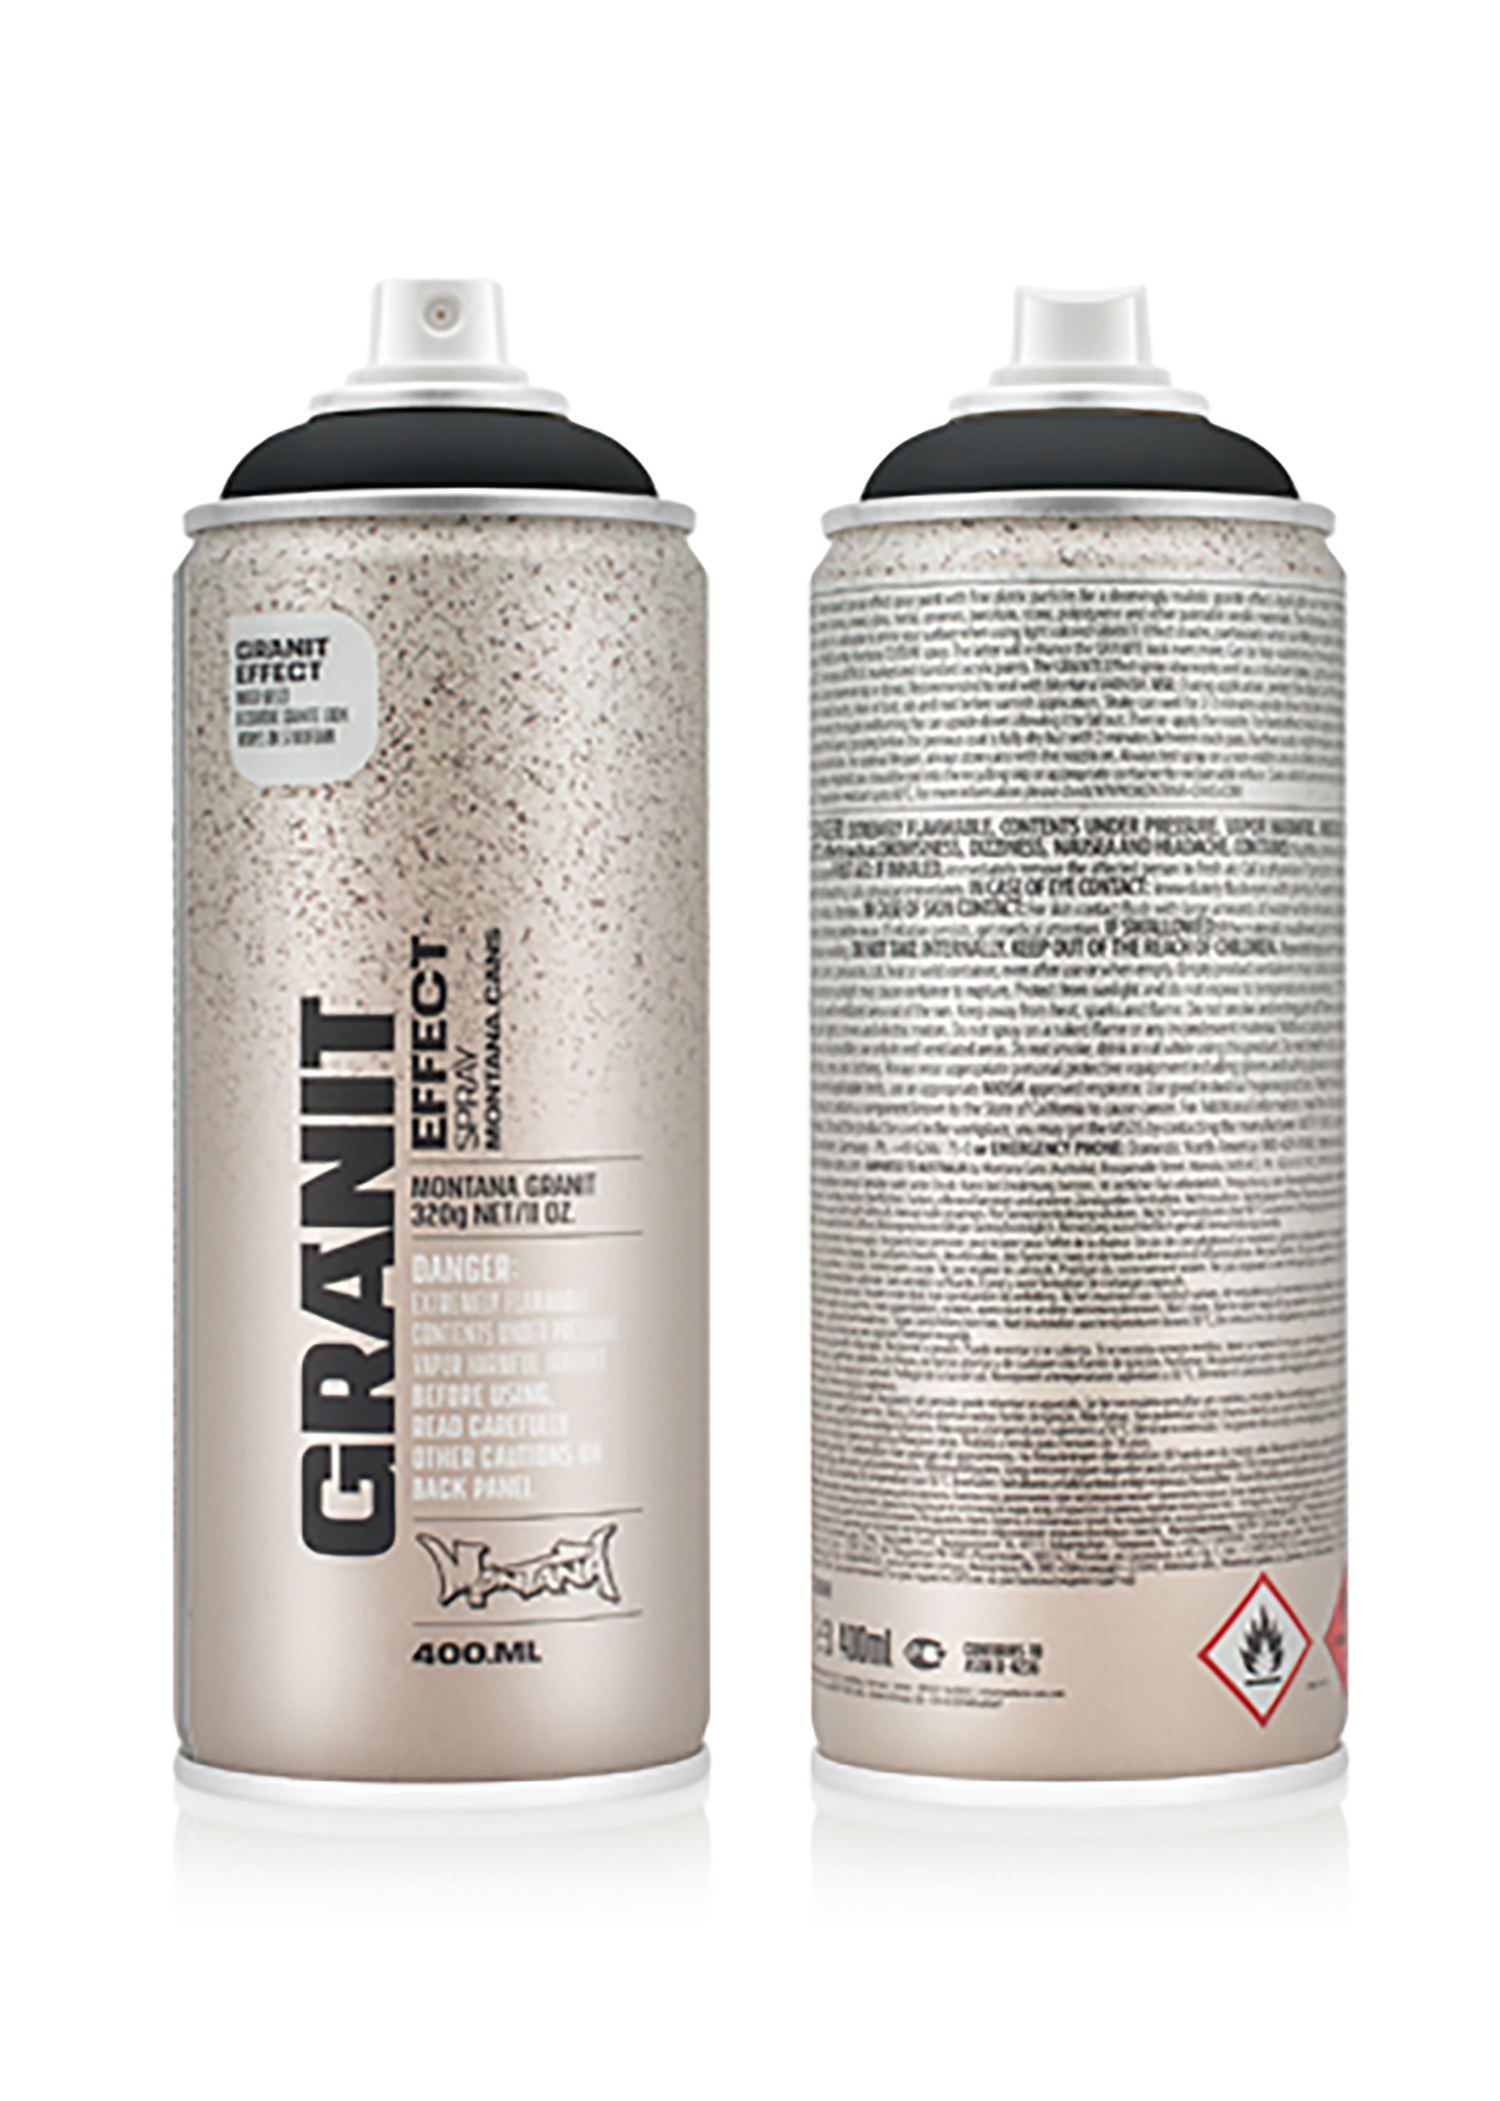 MONTANA-EFFECT-GRANIT-SPRAY-400ML_EG9000 Black